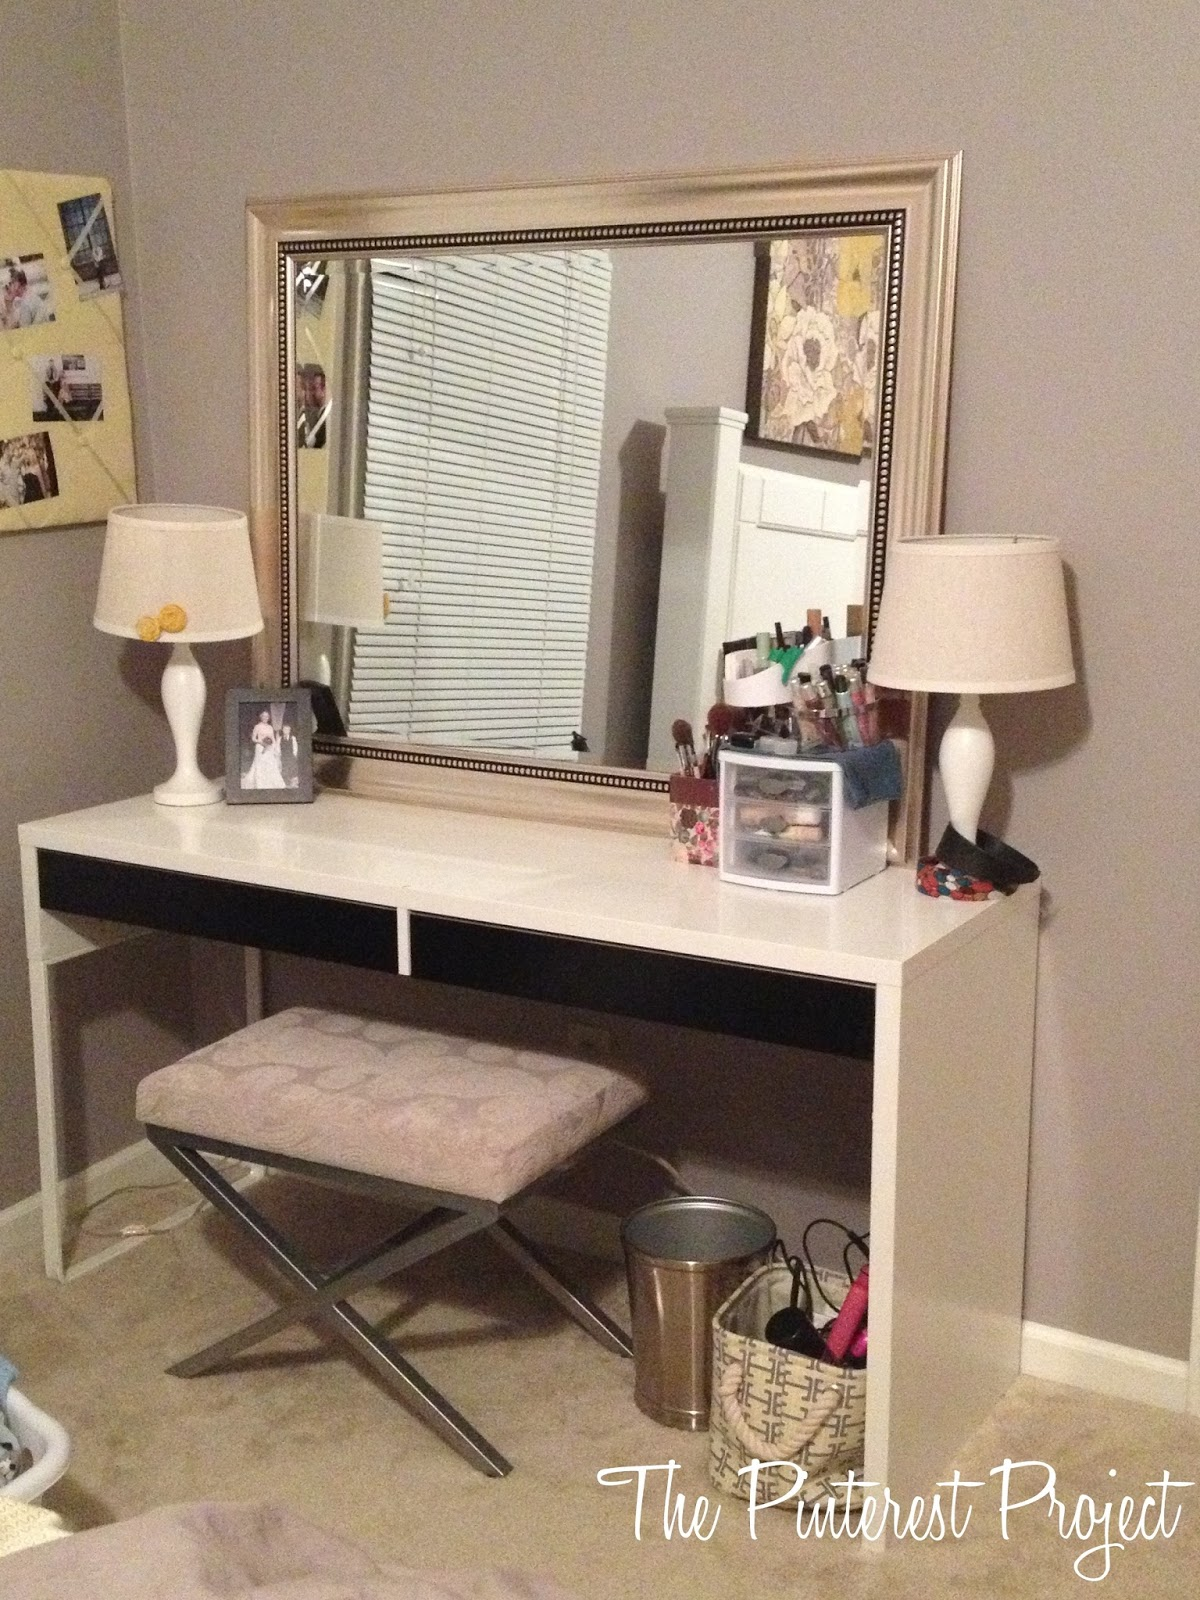 Ikea malm dresser with mirror